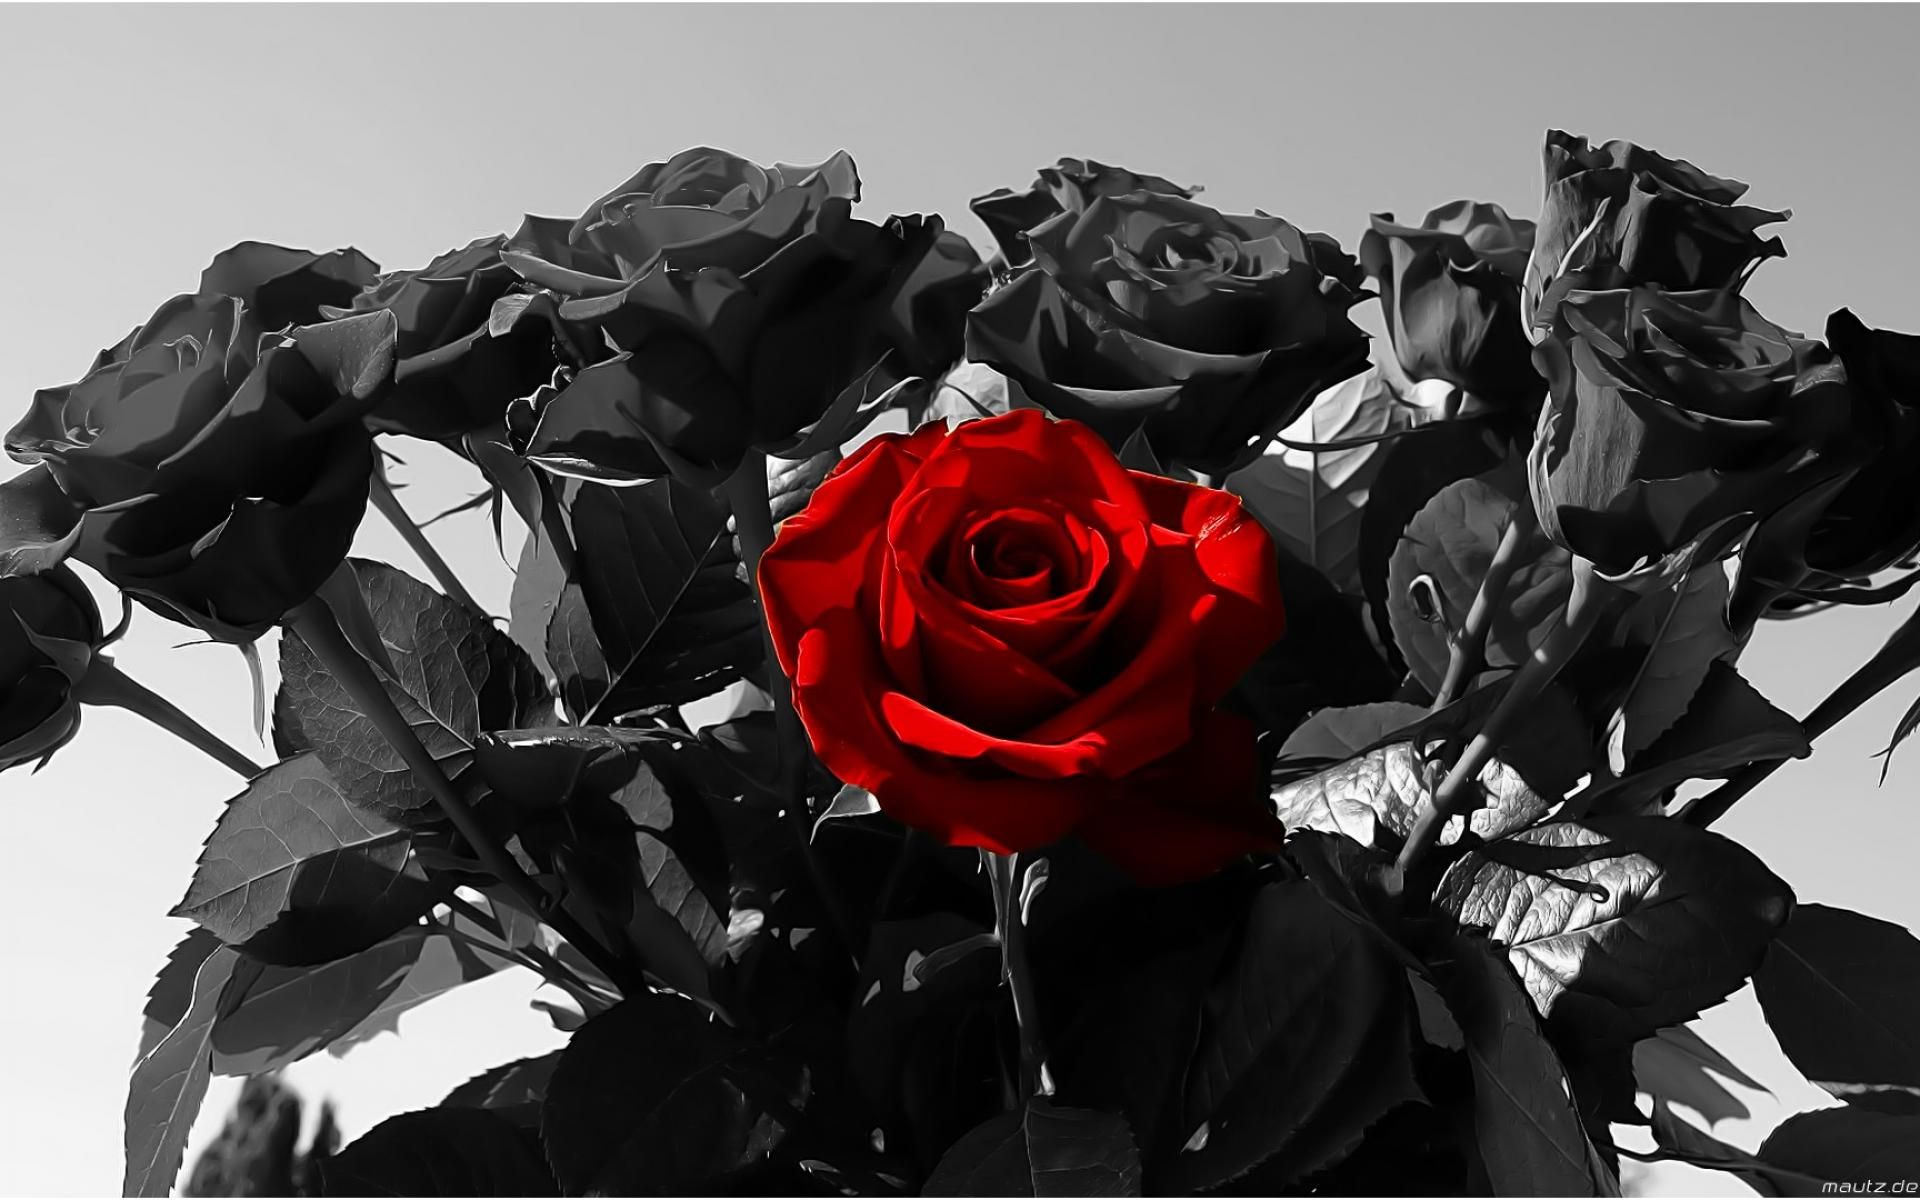 Black Rose Wallpaper Free Flowers Wallpaper Altilici Com Black Roses Wallpaper Black And Red Roses Black And White Background